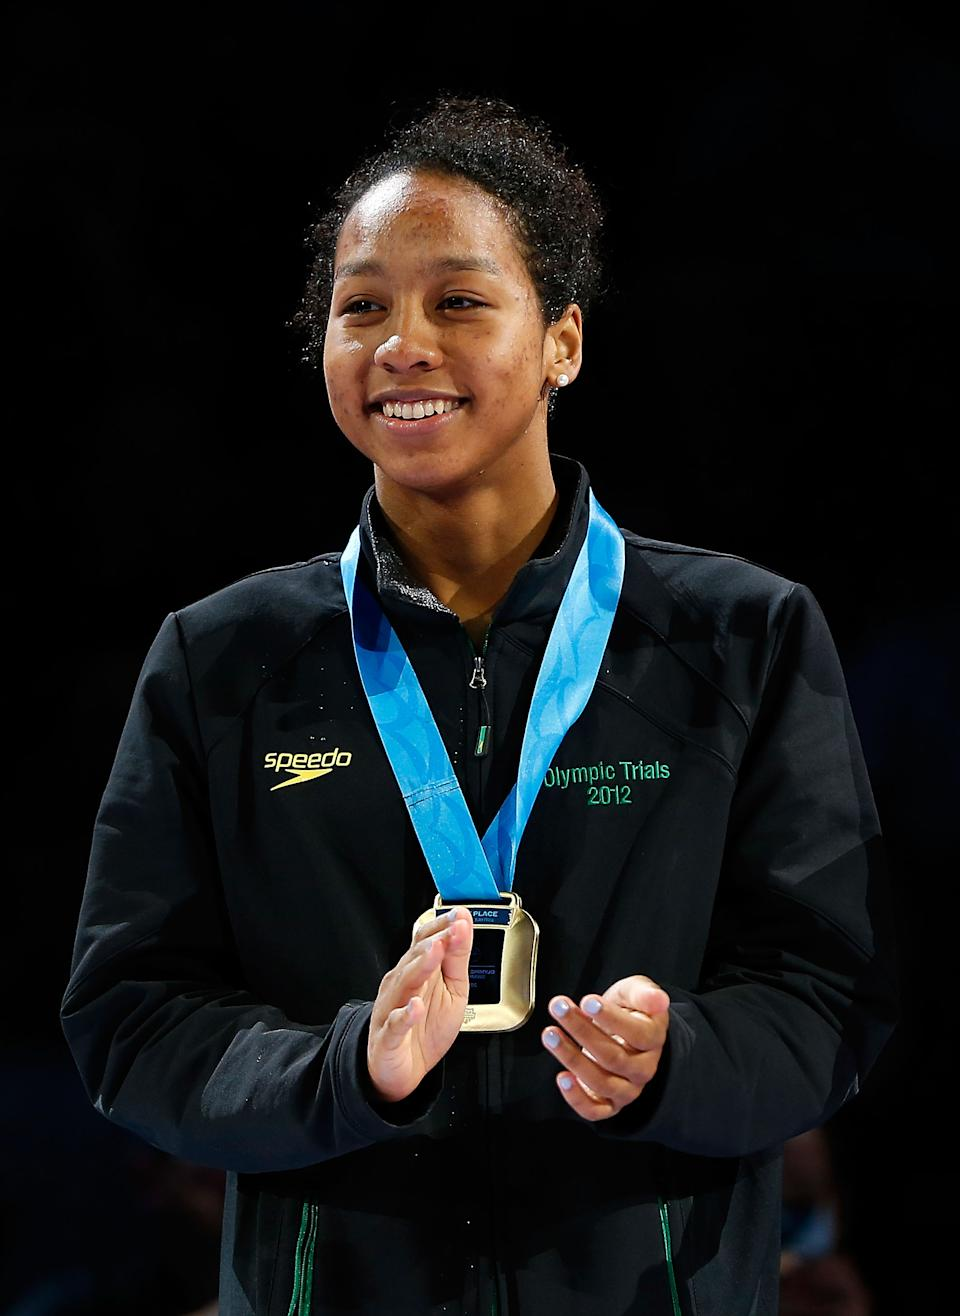 Lia Neal, 17, celebrates during the medal ceremony for the Women's 100 m Freestyle during Day Six of the 2012 U.S. Olympic Swimming Team Trials at CenturyLink Center on June 30, 2012 in Omaha, Nebraska. (Photo by Jamie Squire/Getty Images)